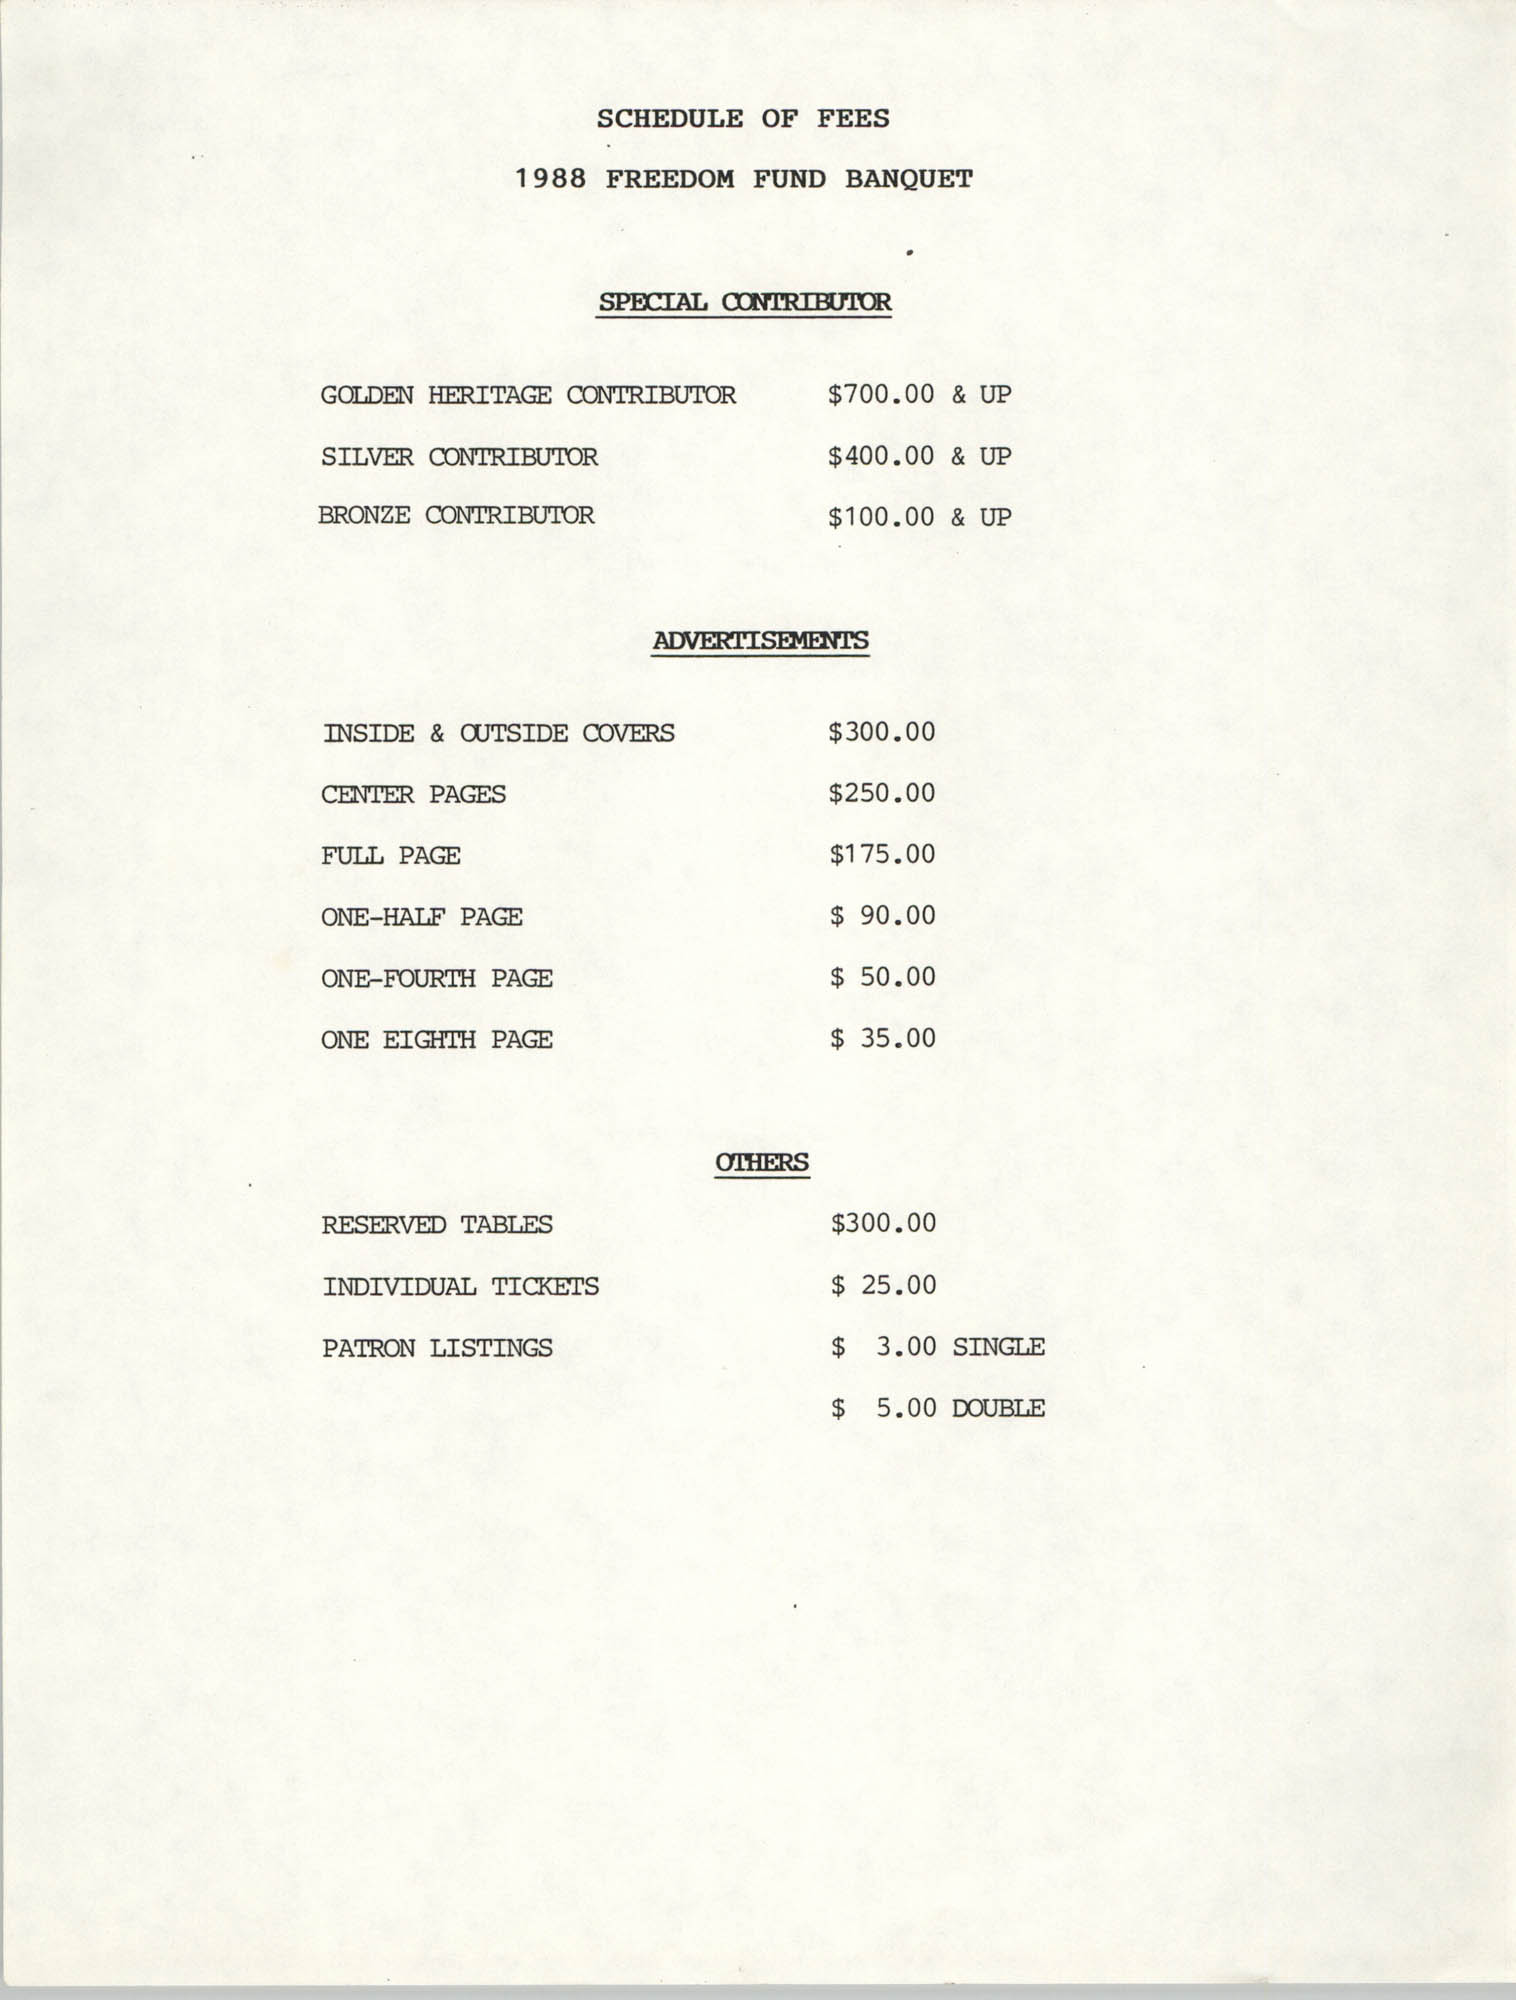 Schedule of Fees, 1988 Freedom Fund Banquet